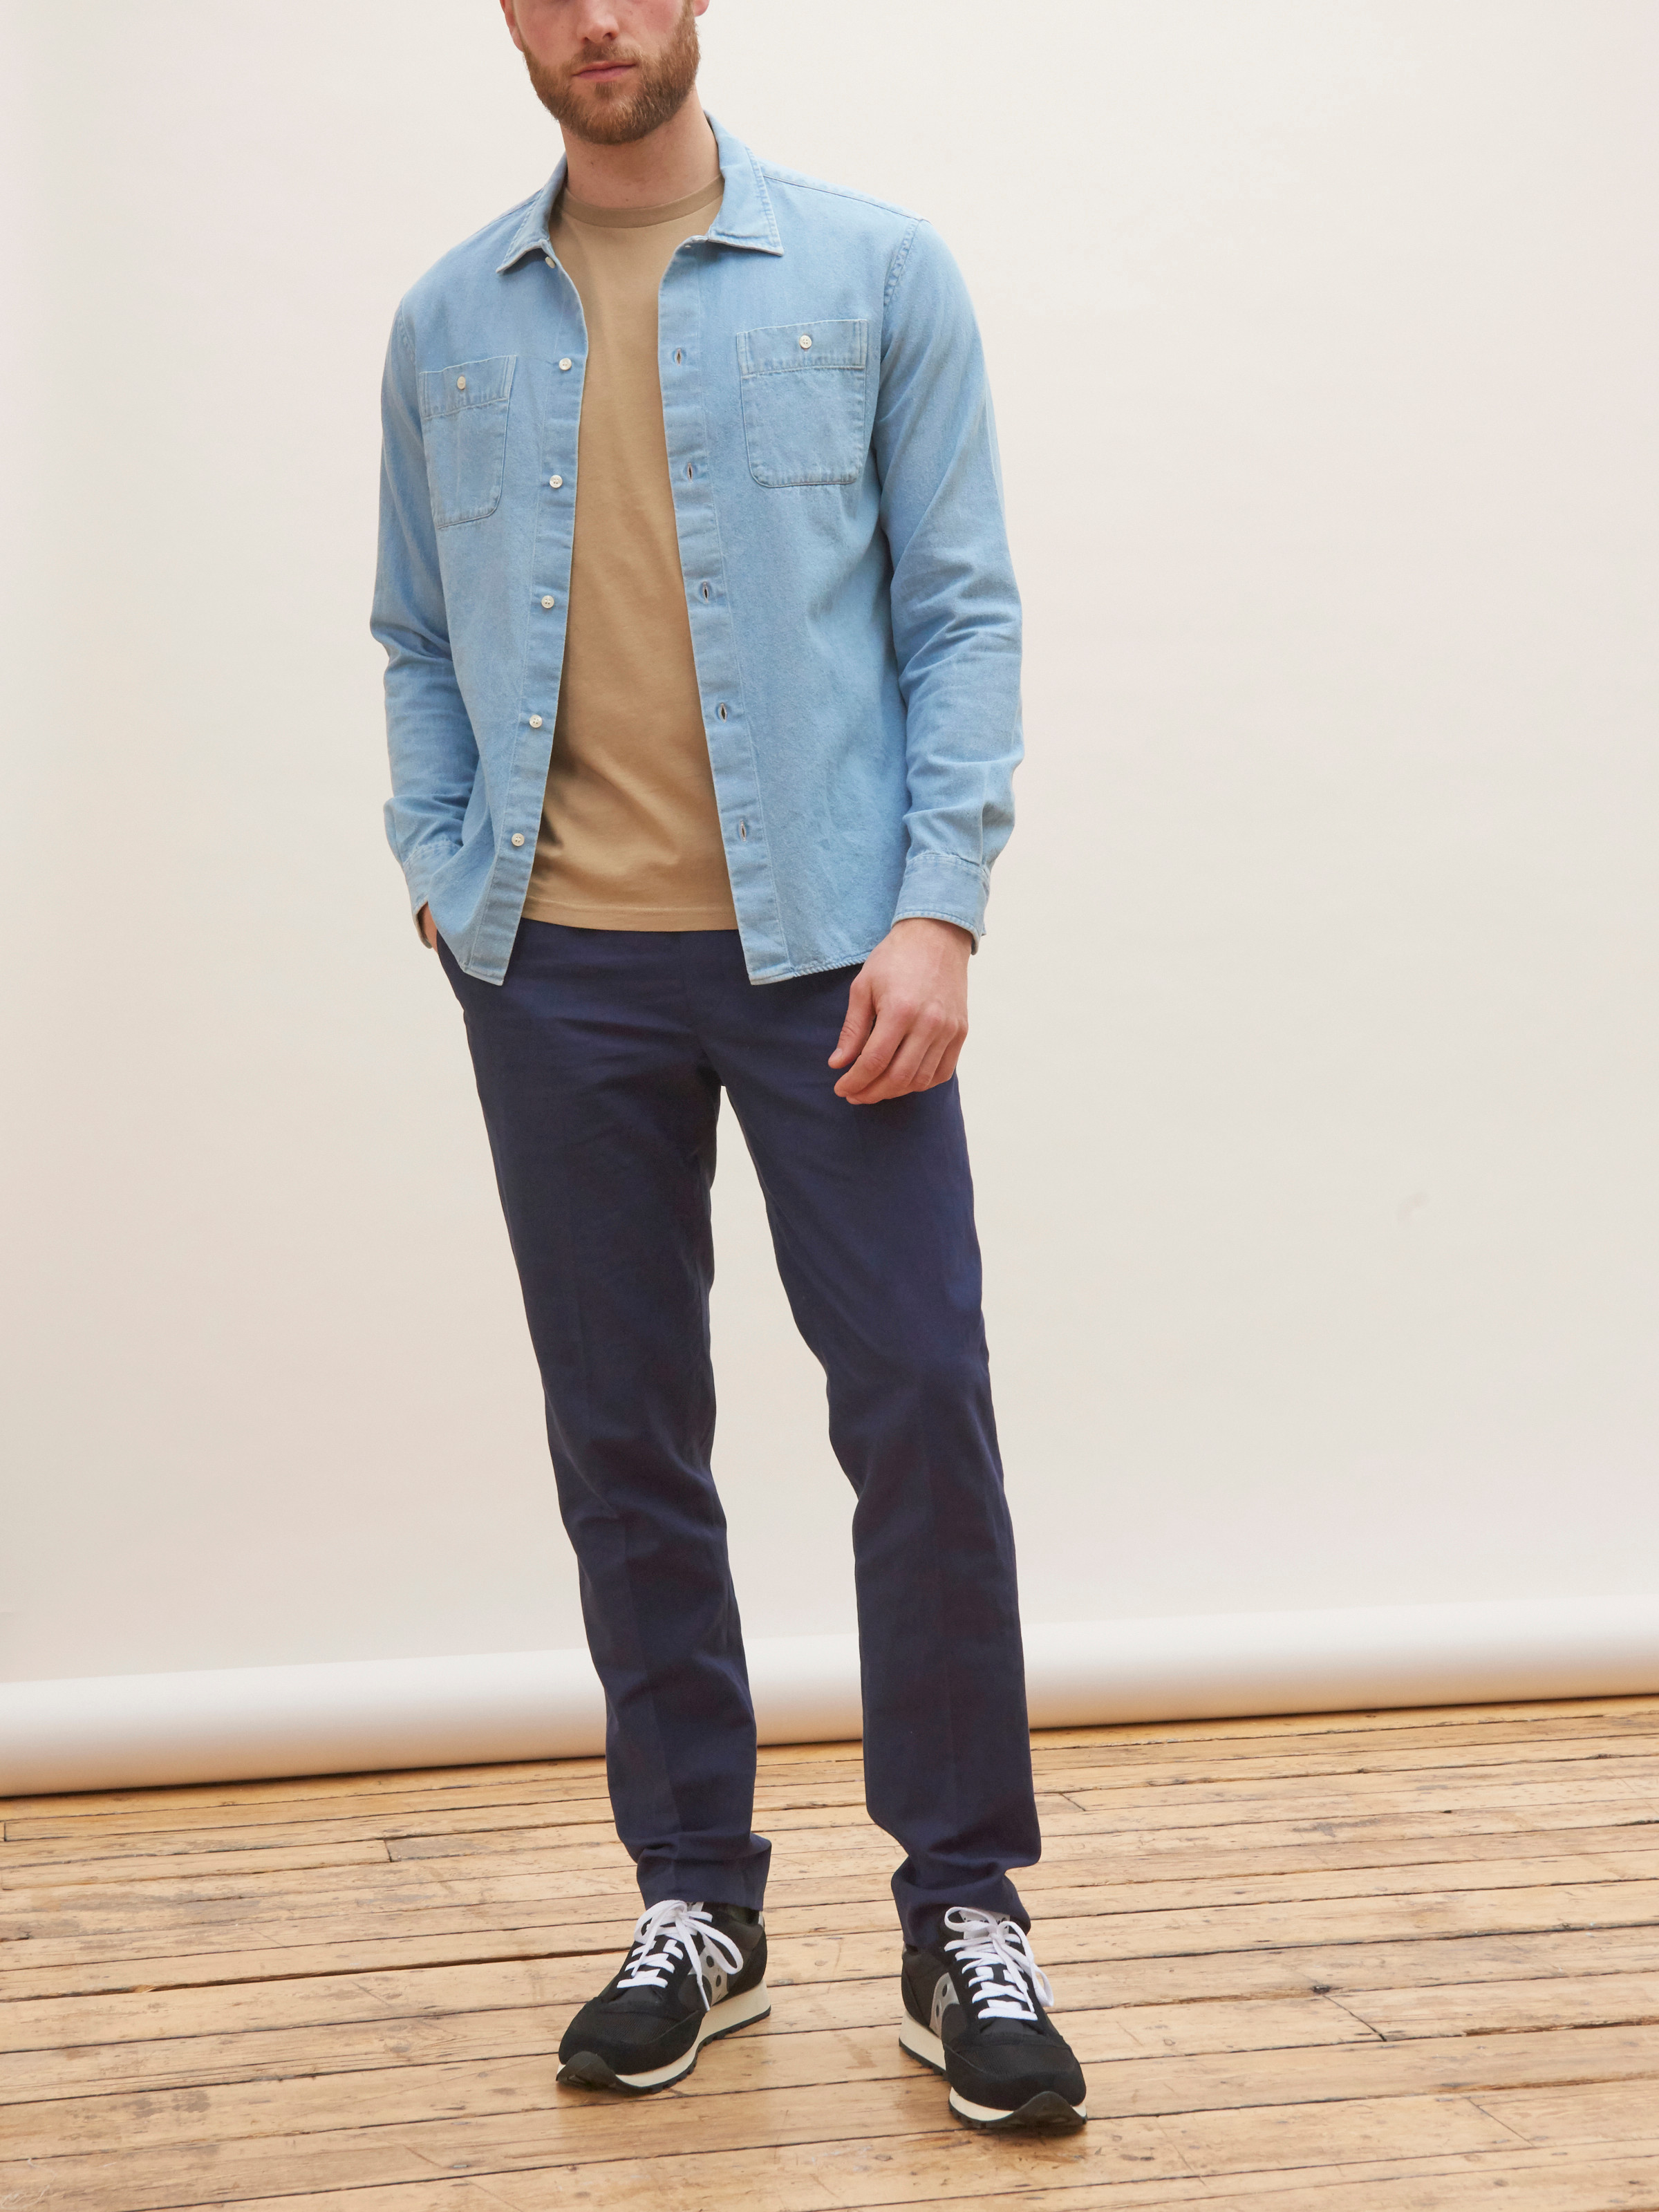 Men's outfit idea for 2021 with denim shirt, pale-colored crew neck t-shirt, navy dress pants, neutral sneakers. Suitable for spring and fall.